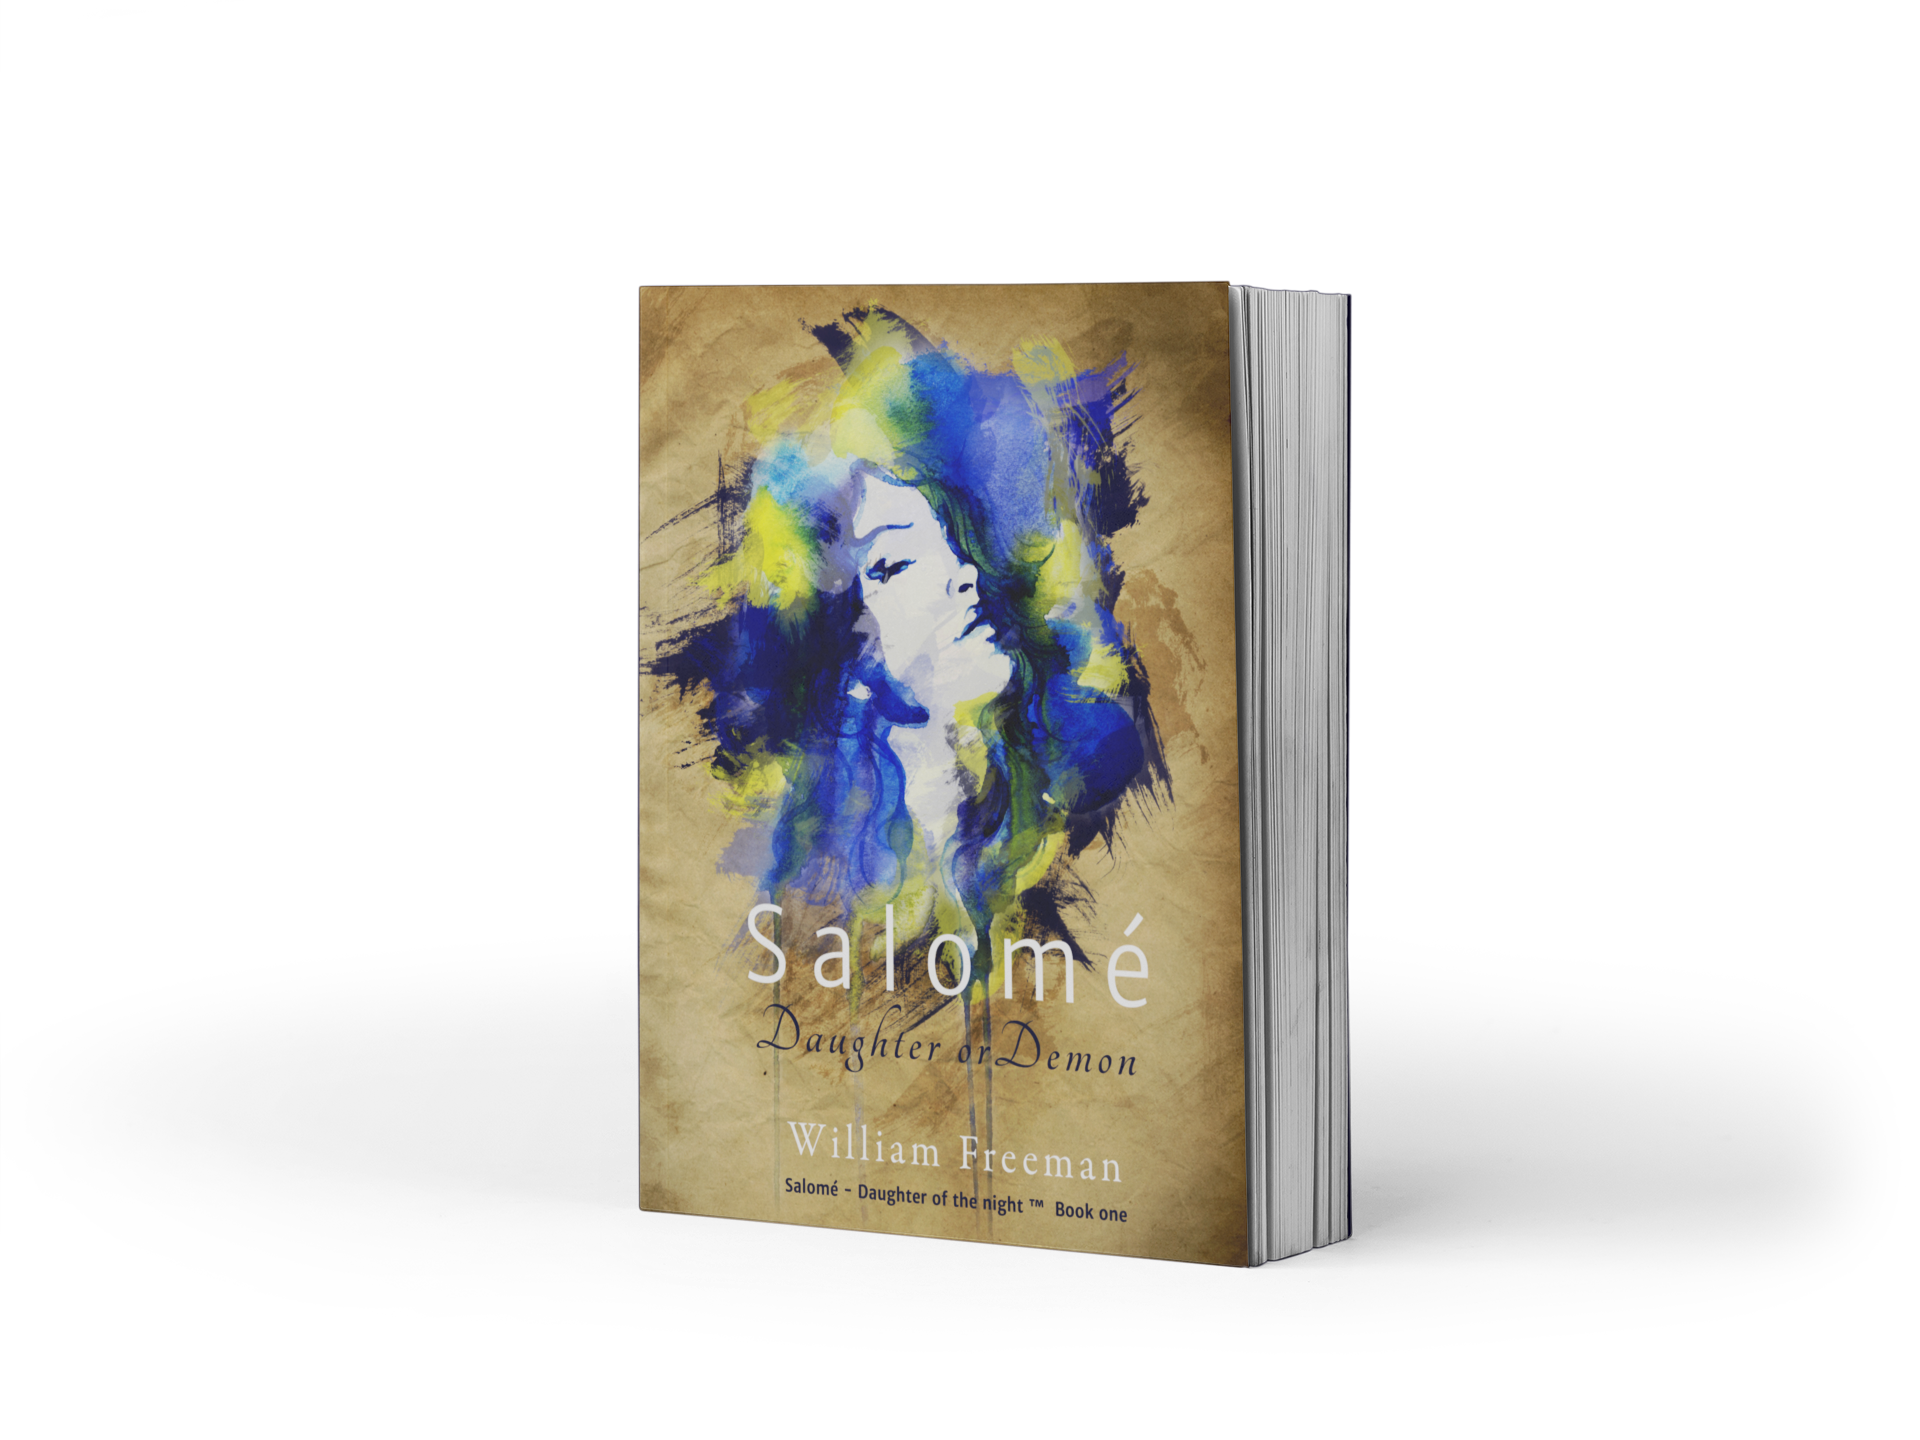 Salomé _- _Daughter_or _Demon_book_standing_upright